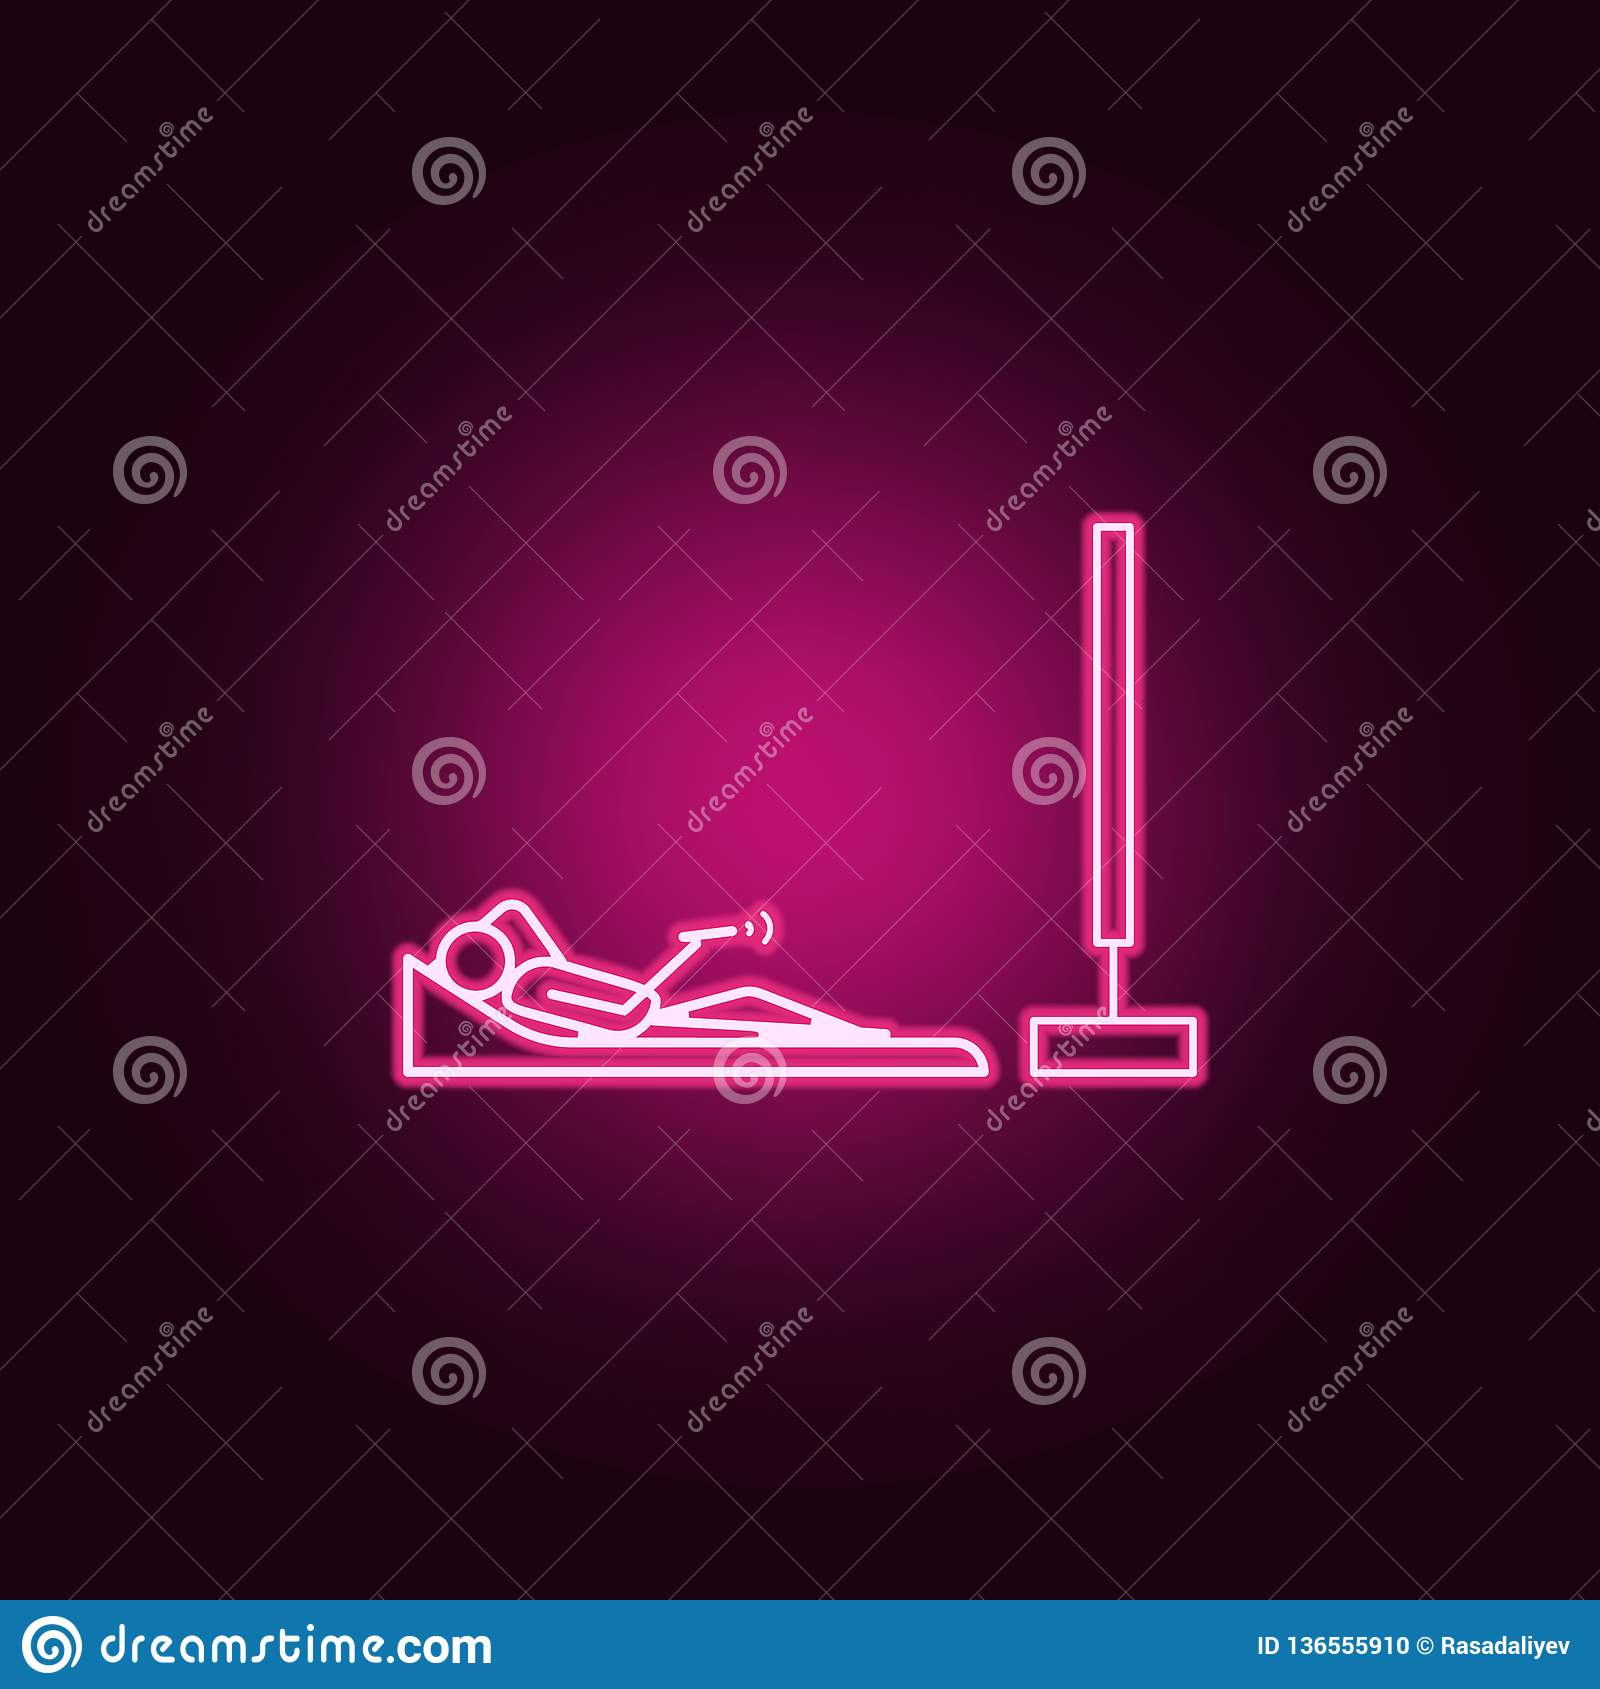 lying watching tv outline icon. Elements of Lazy in neon style icons. Simple icon for websites, web design, mobile app, info